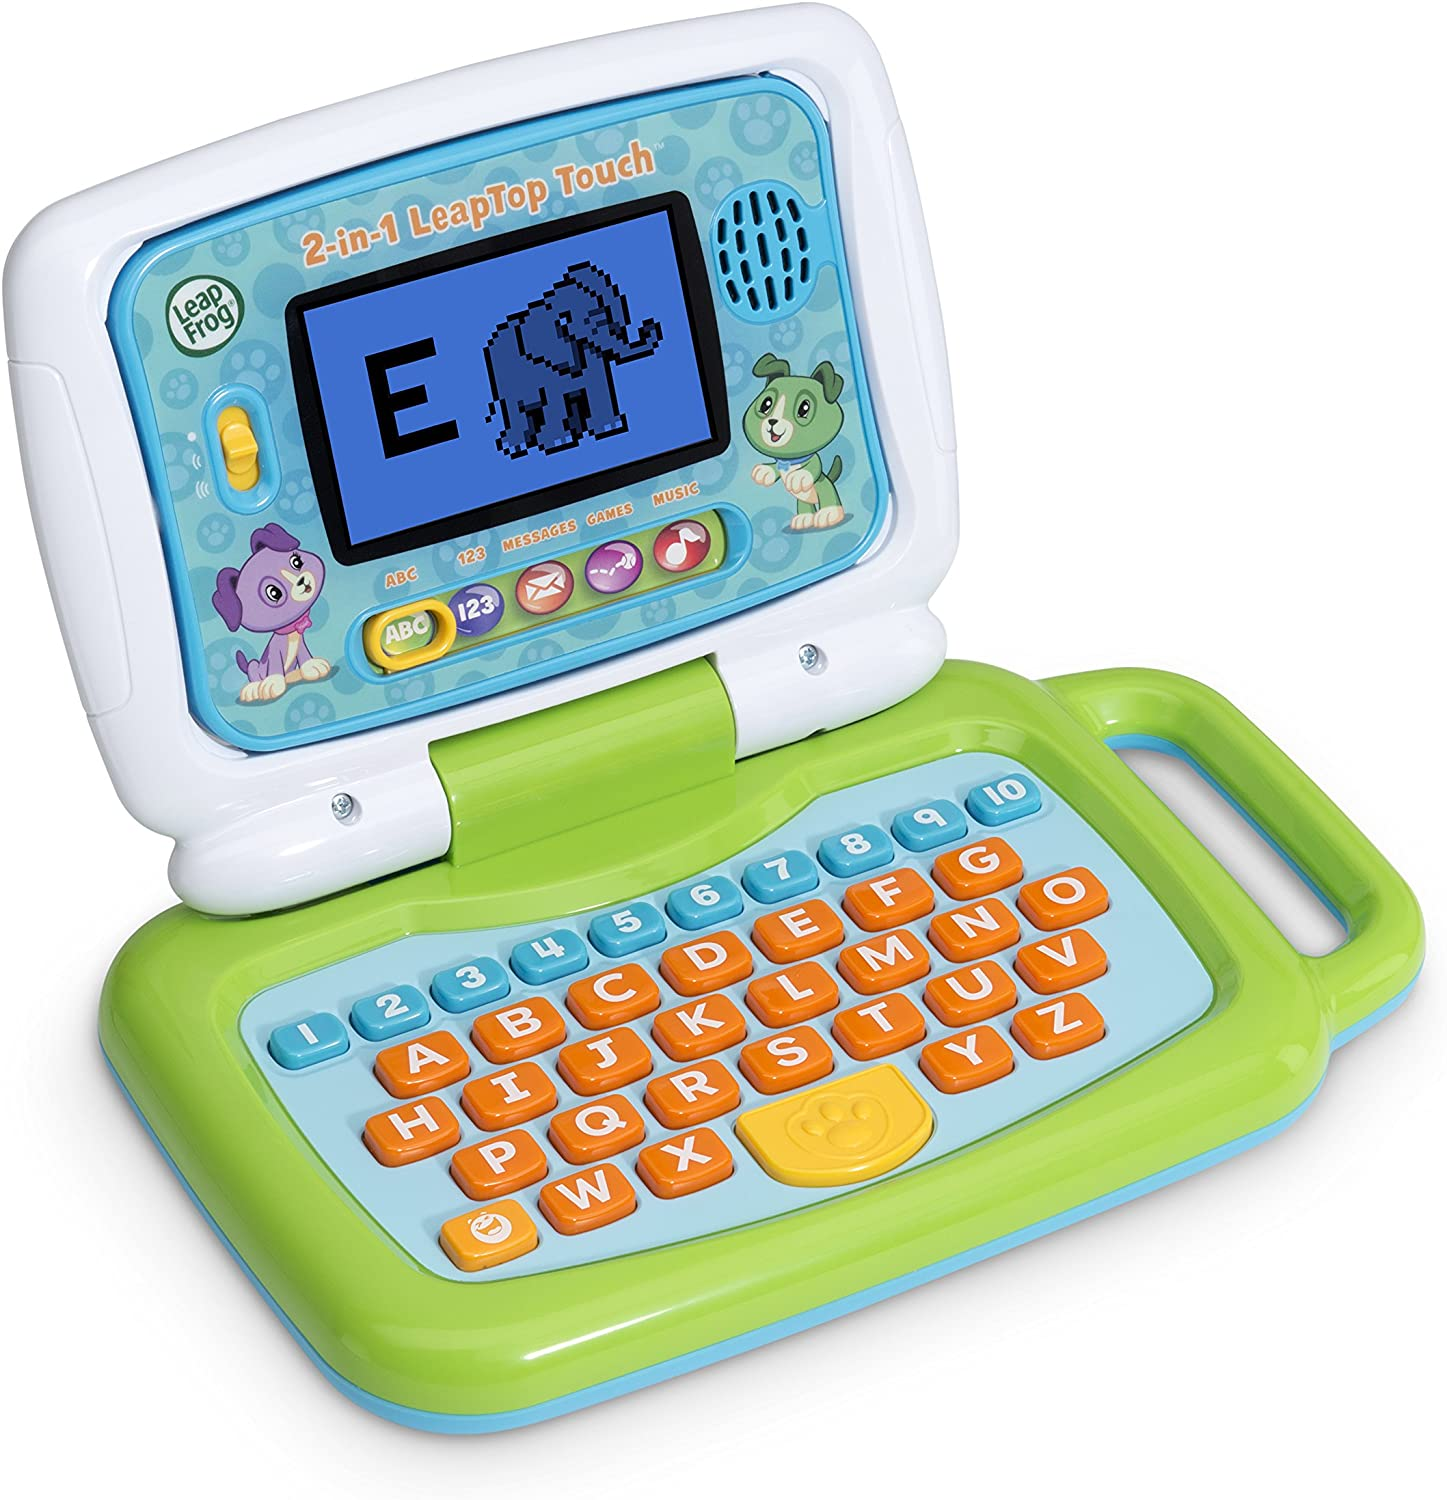 LeapFrog 2-in-1 LeapTop Touch Green Frustration Free Packaging